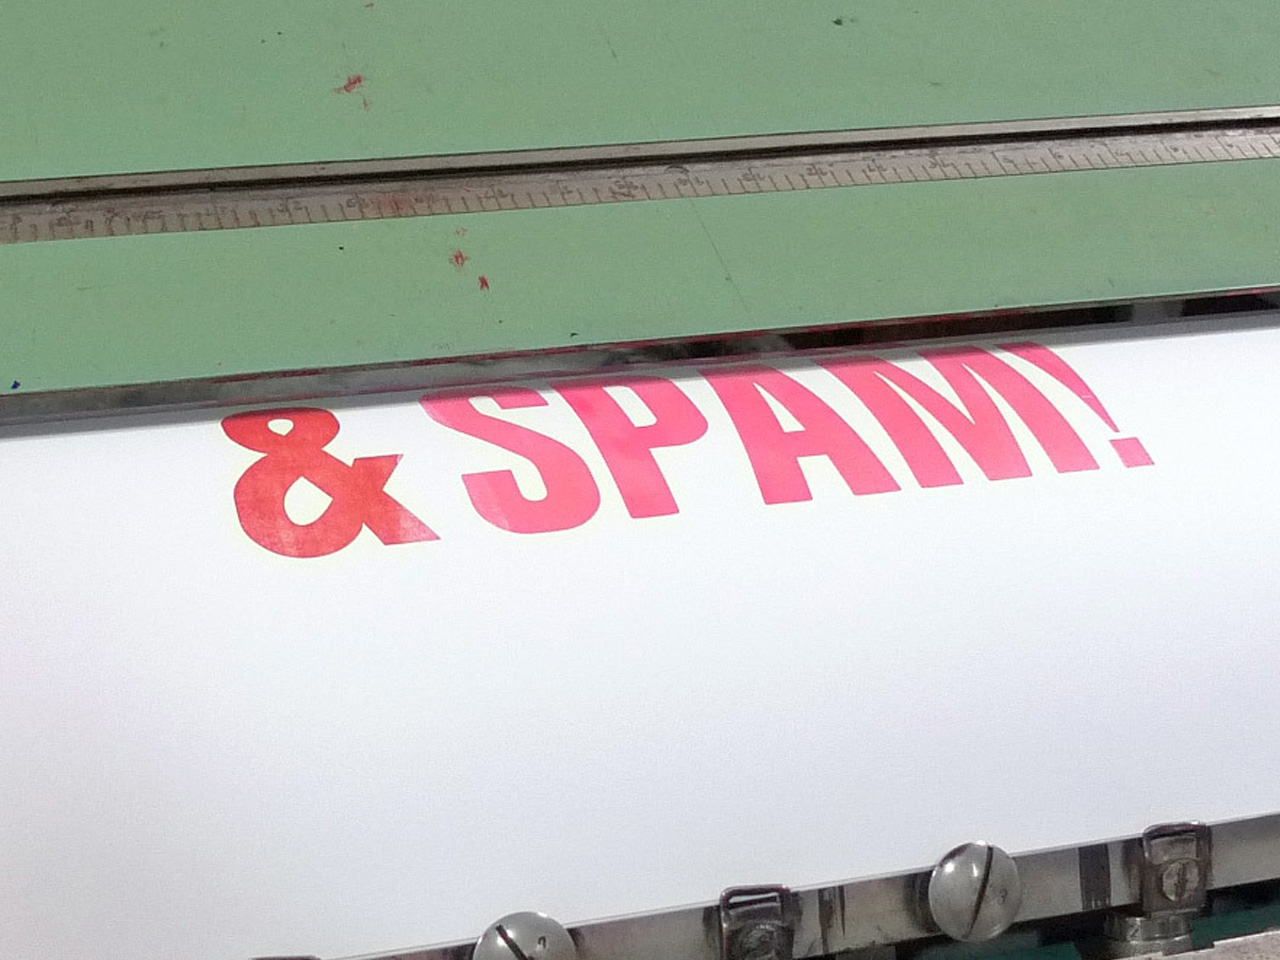 Spam, spam, spam, bacon & spam! [detalle]